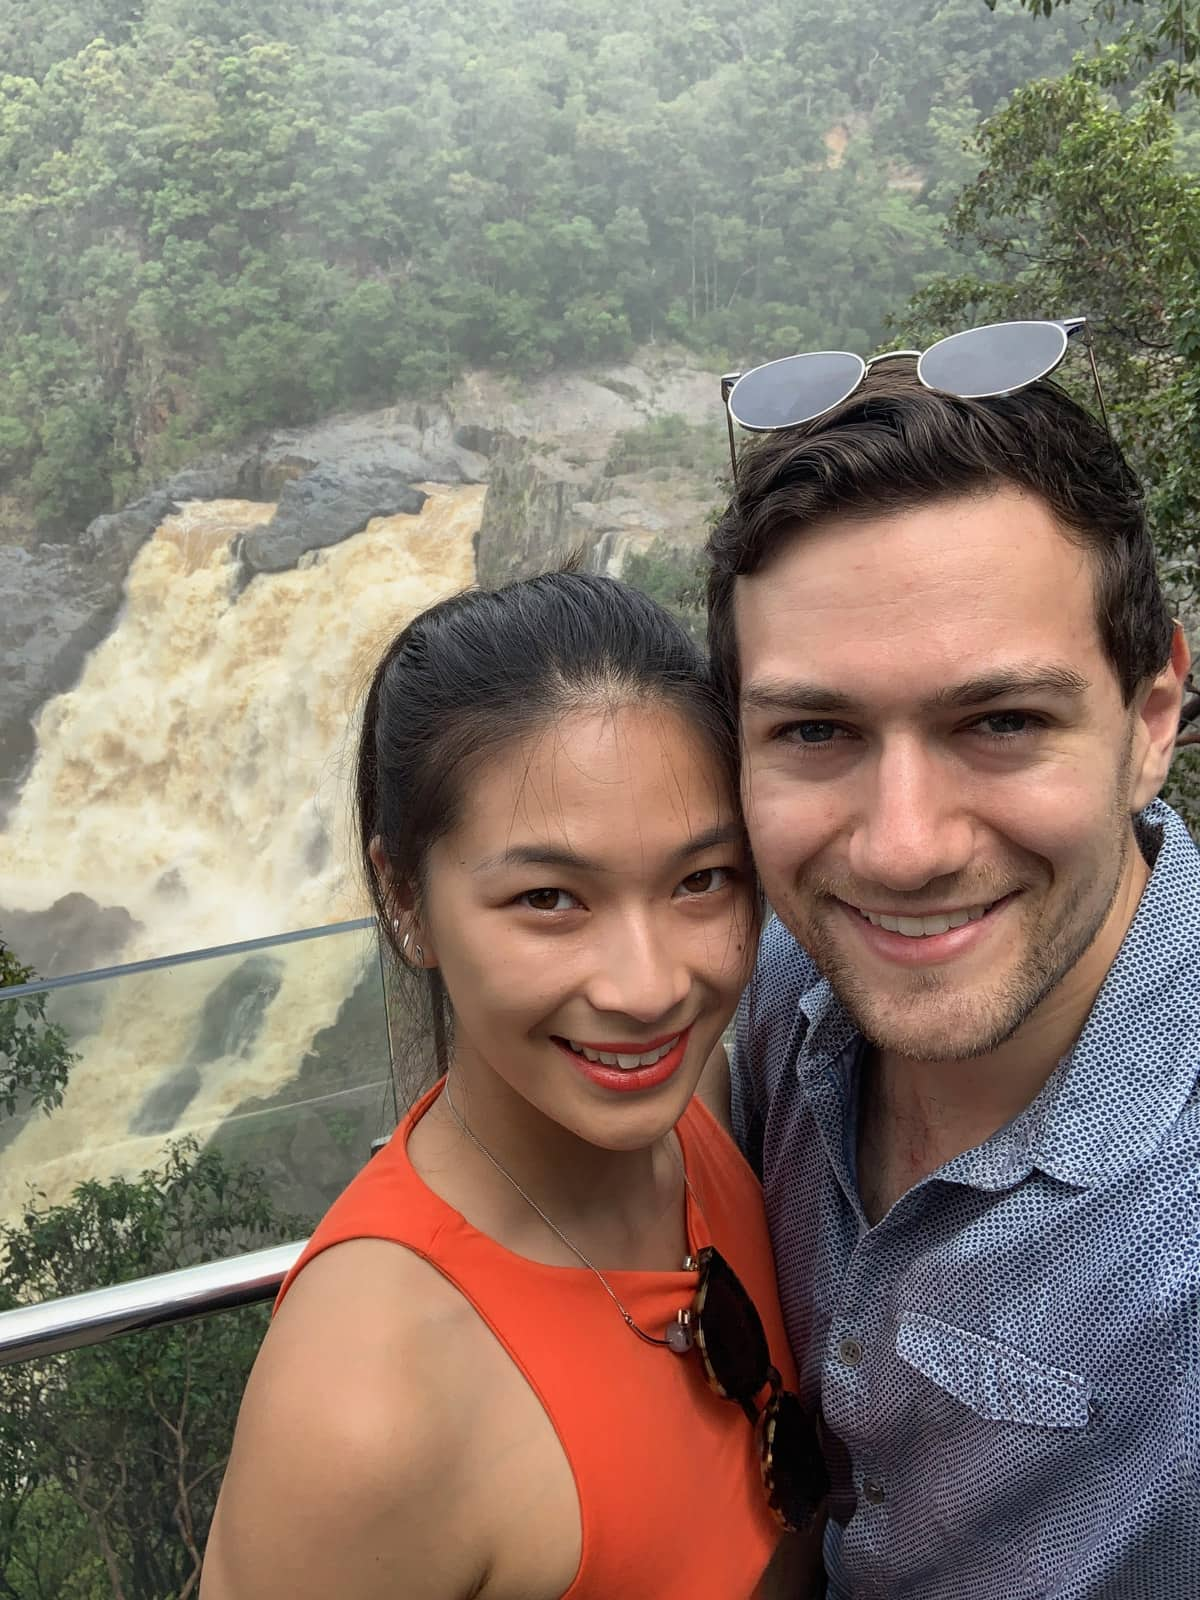 A selfie of a man and woman smiling. The woman is wearing an orange top and the man is wearing a pattered blue collared shirt and has sunglasses on top of his head. There is a waterfall in the background.